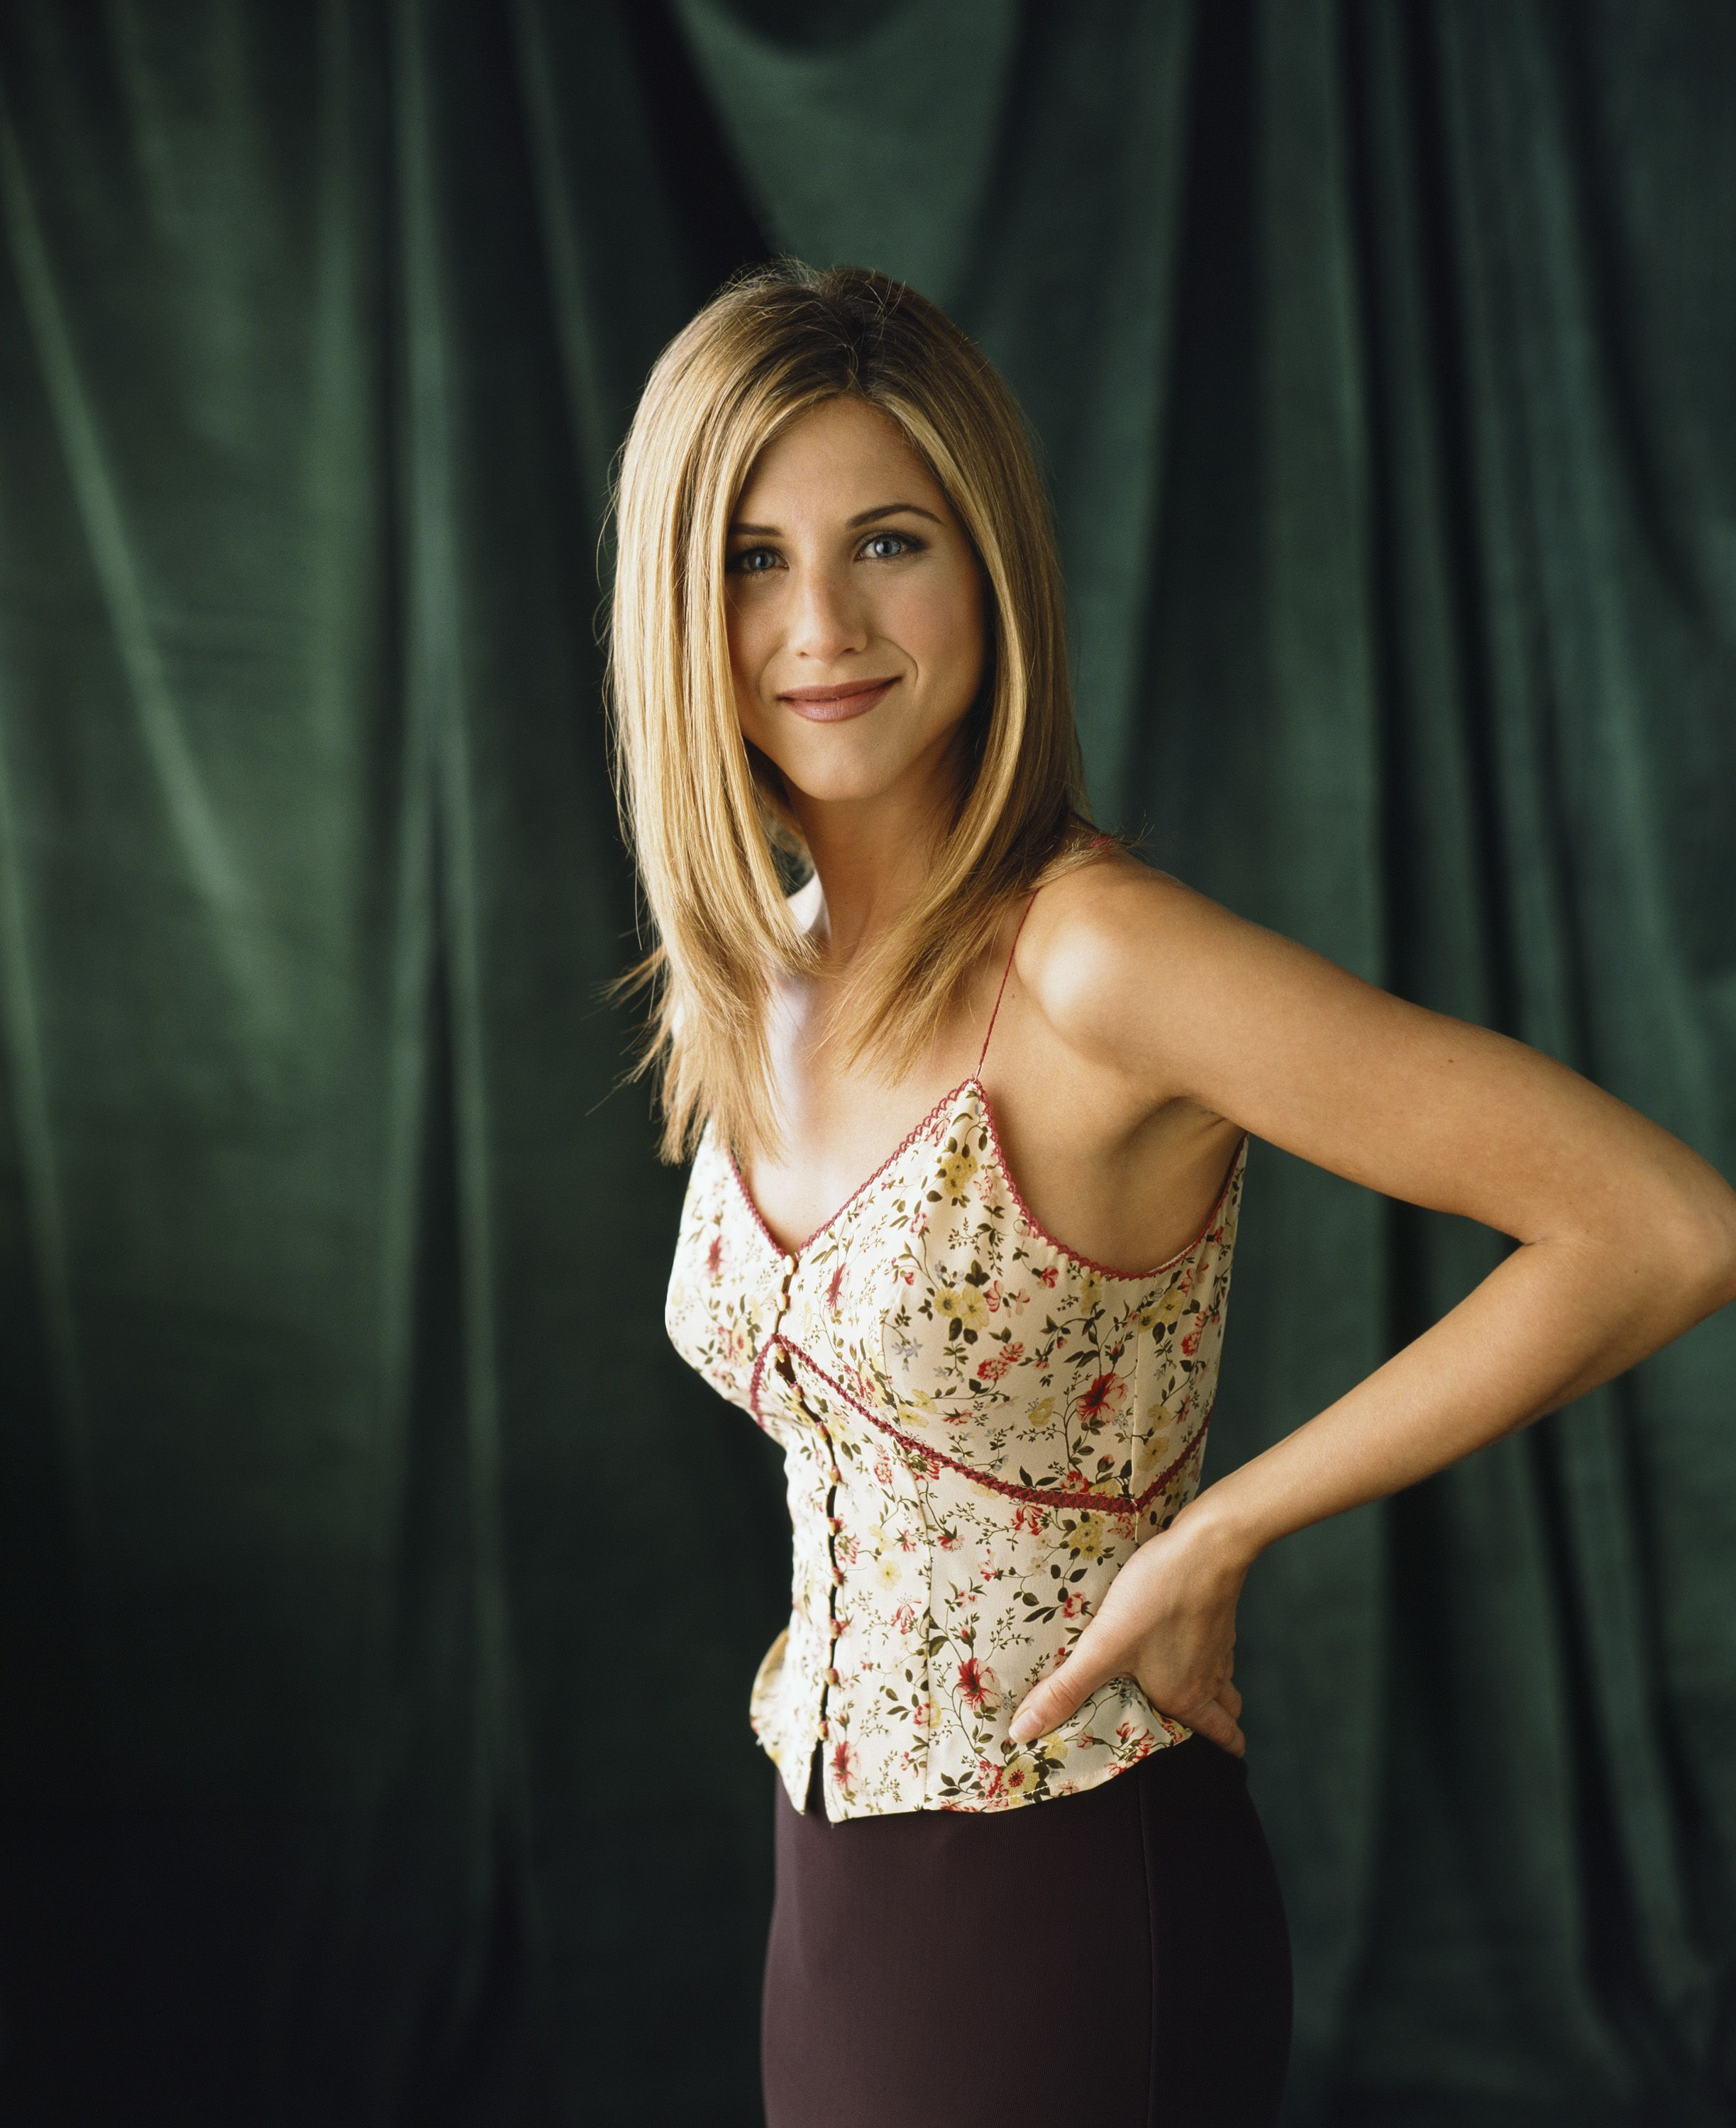 Friends star Jennifer Aniston explains why a movie never happened